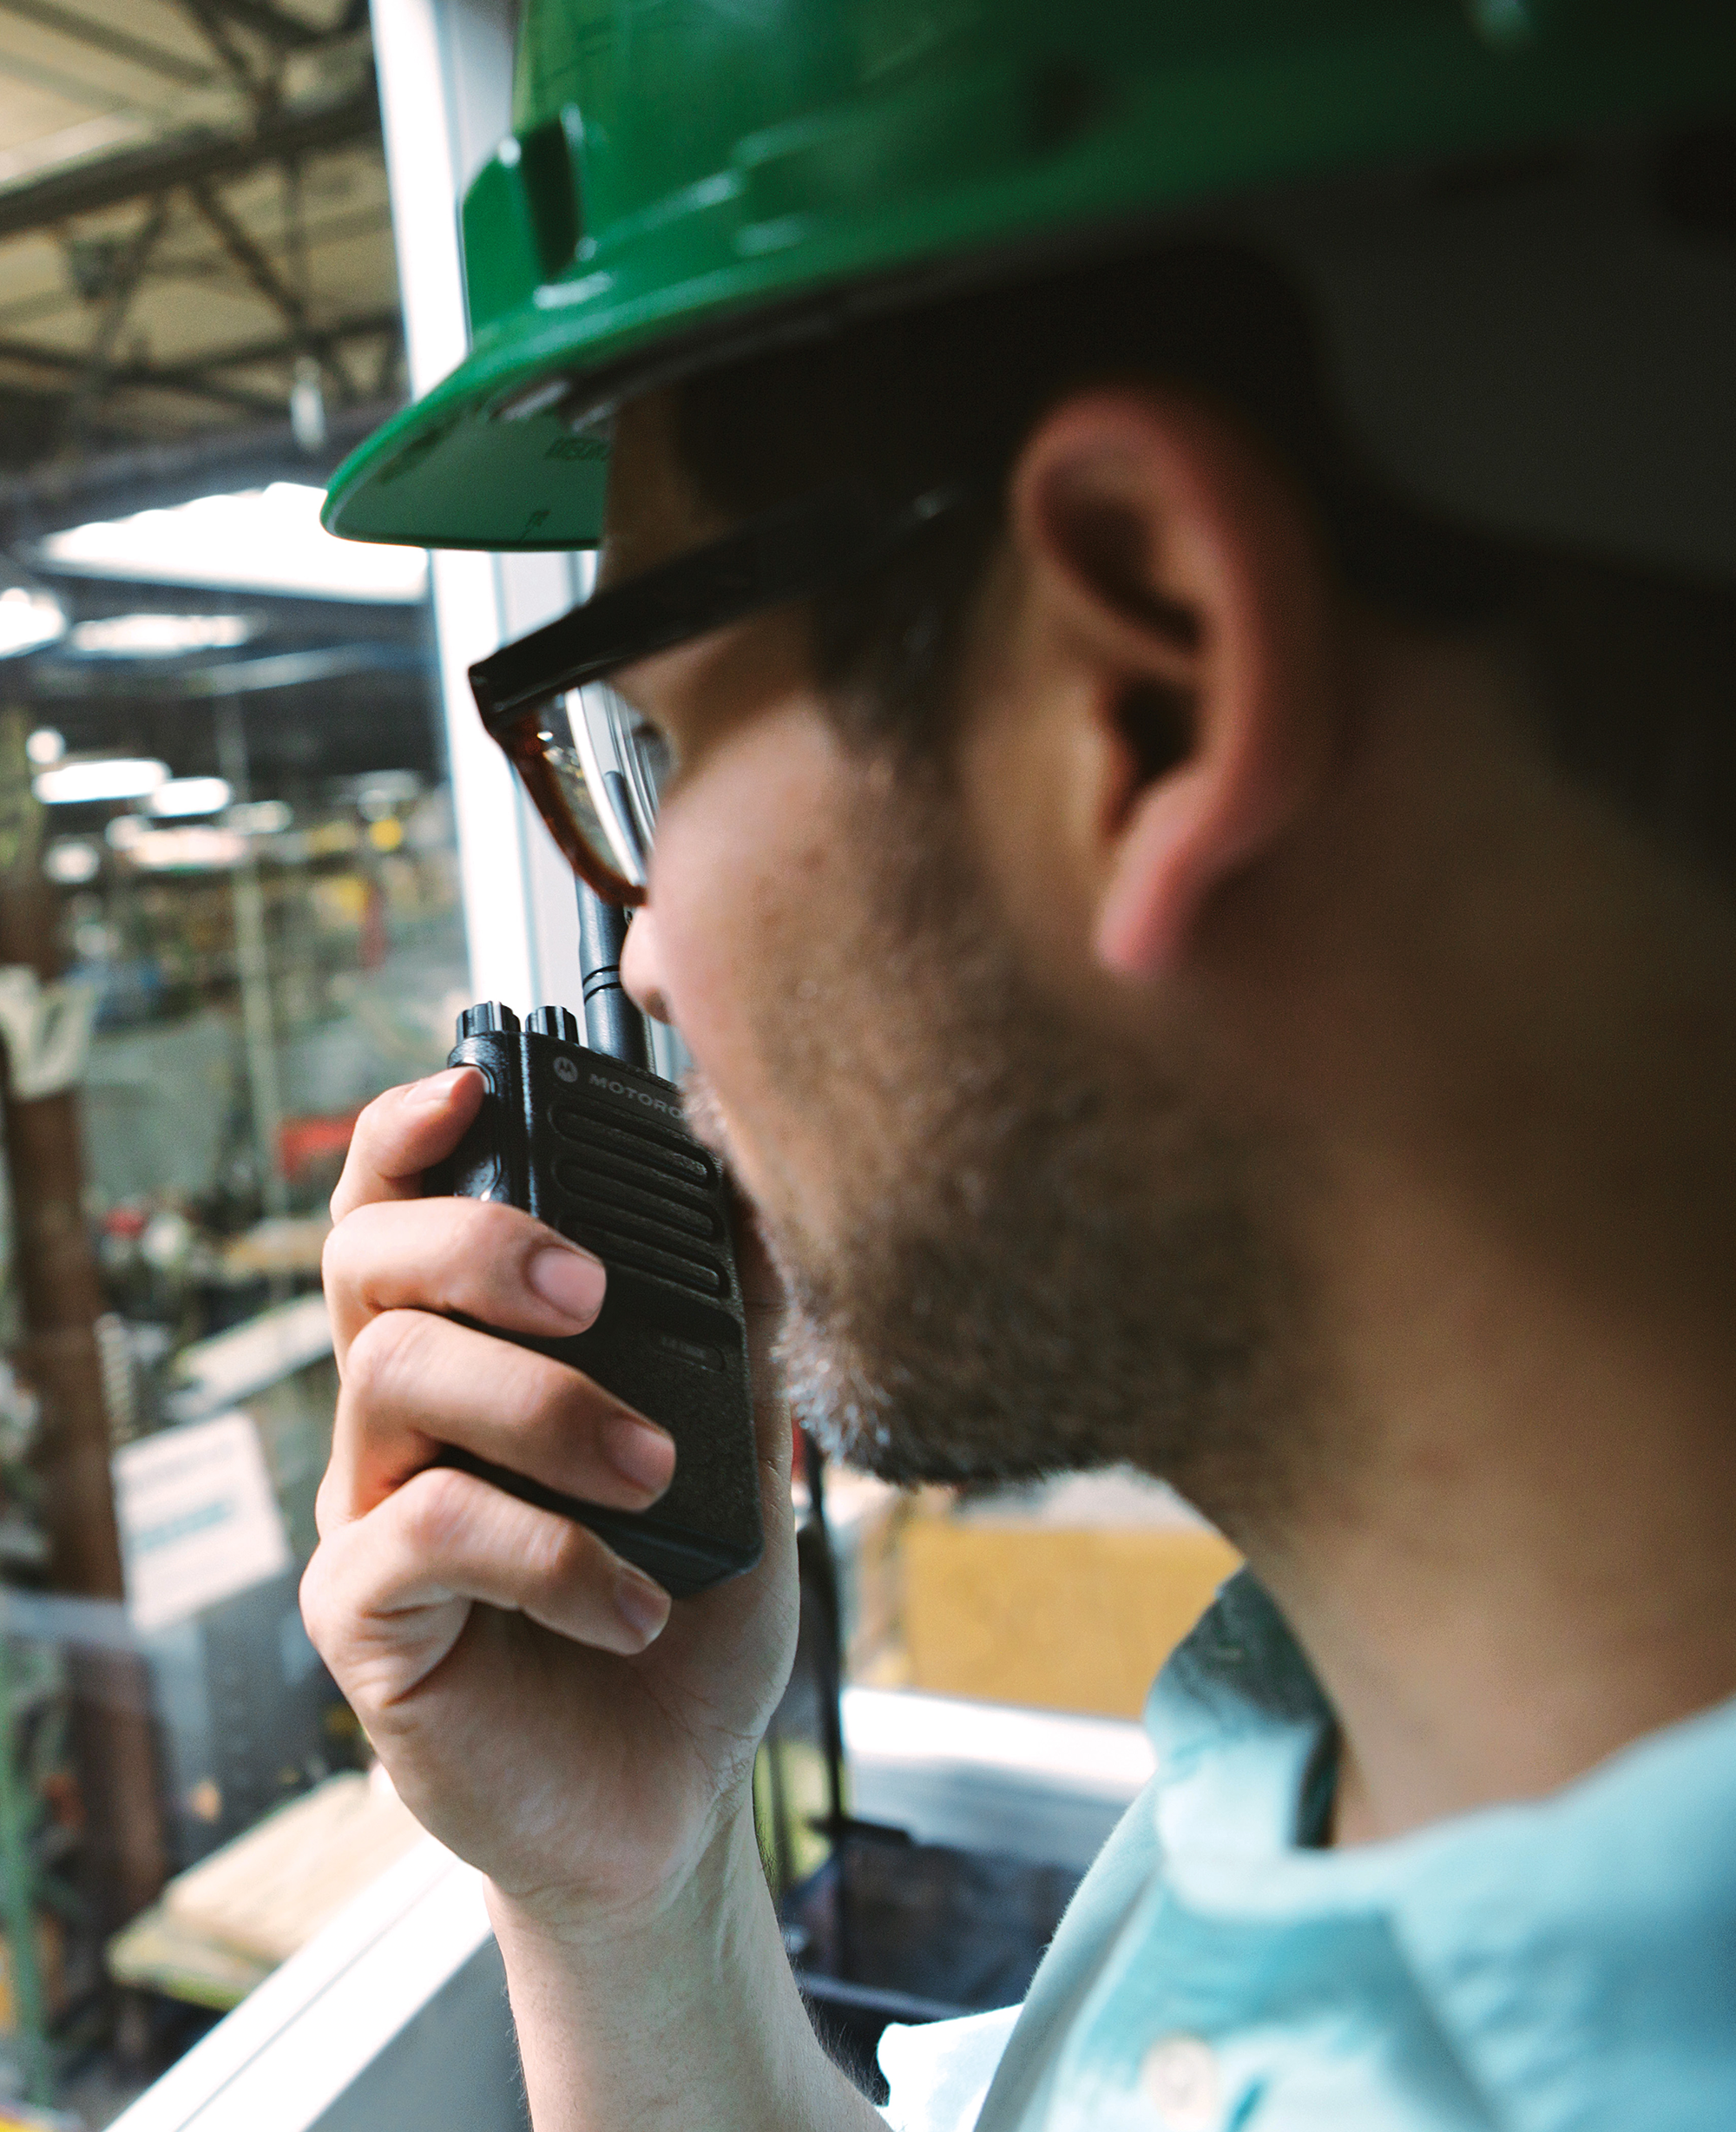 advantages of digital two way radios Latest generation of digital two-way radio systems - crystal clear audio transmissions and impressive functionality enhance productivity, safety & security.